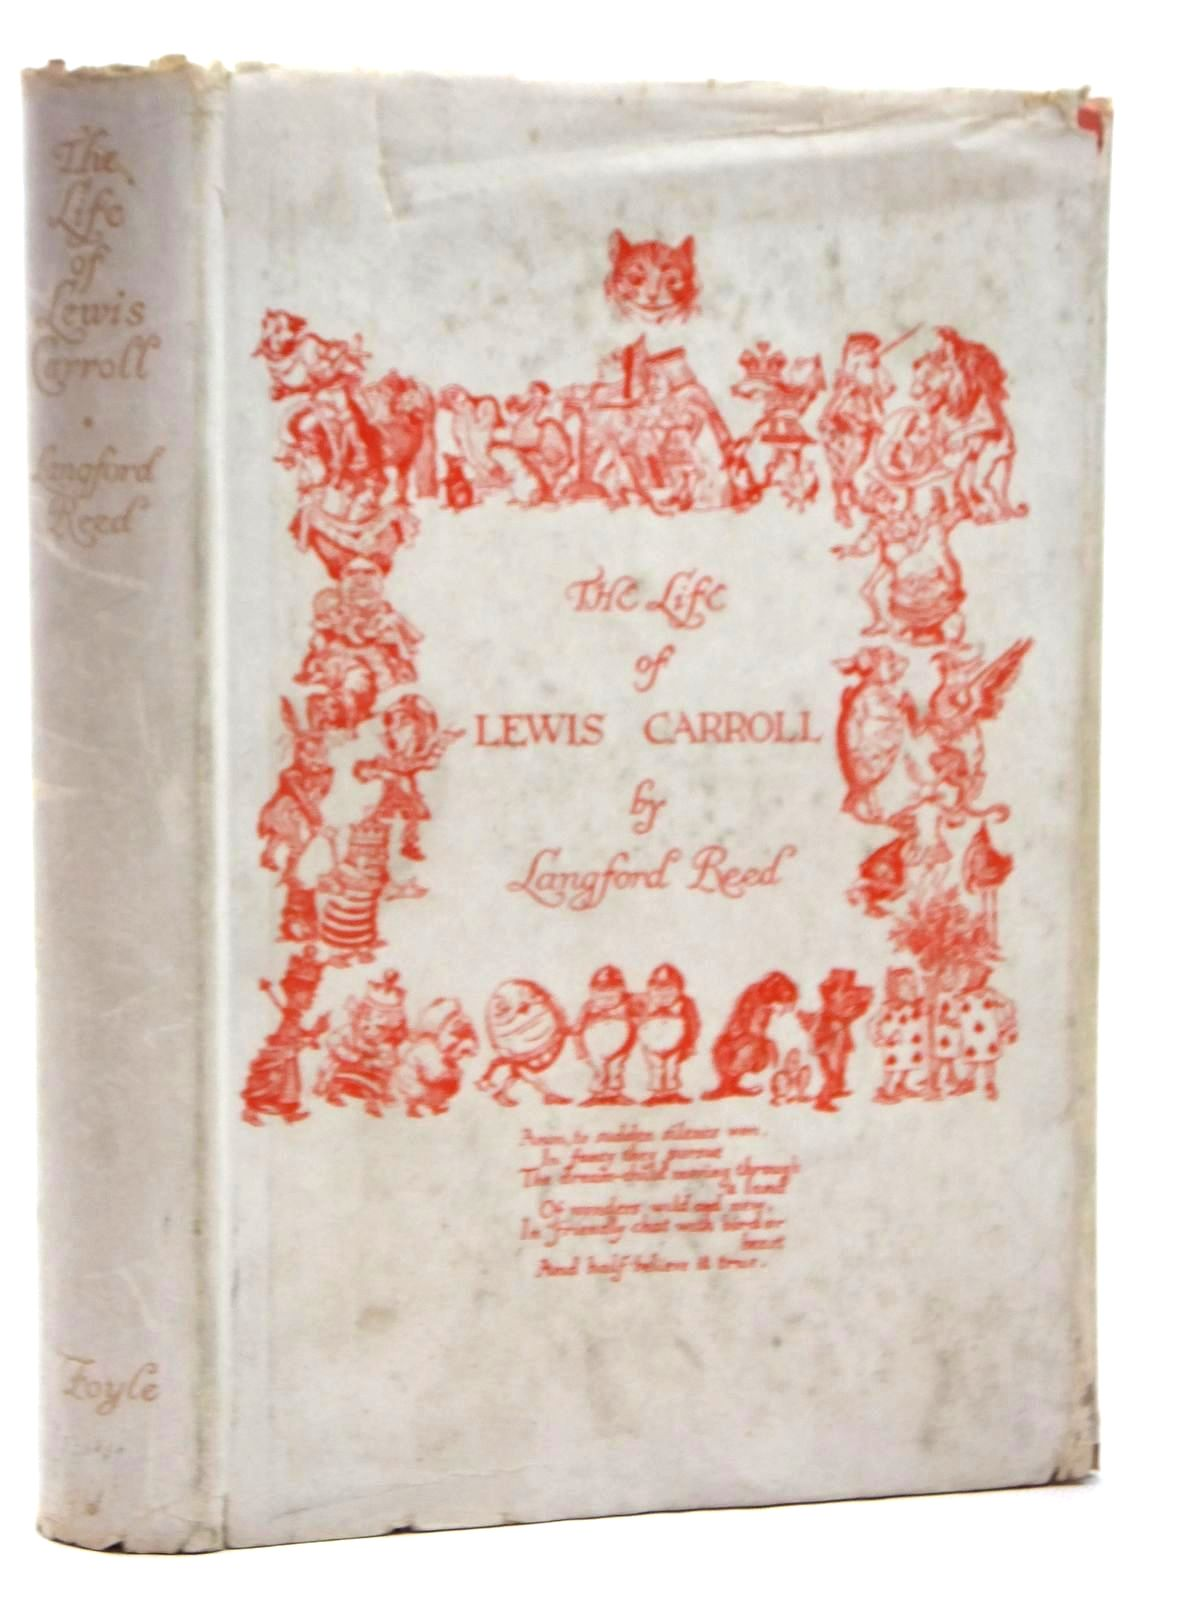 Photo of THE LIFE OF LEWIS CARROLL written by Carroll, Lewis<br />Reed, Langford published by W. & G. Foyle Ltd. (STOCK CODE: 1609545)  for sale by Stella & Rose's Books